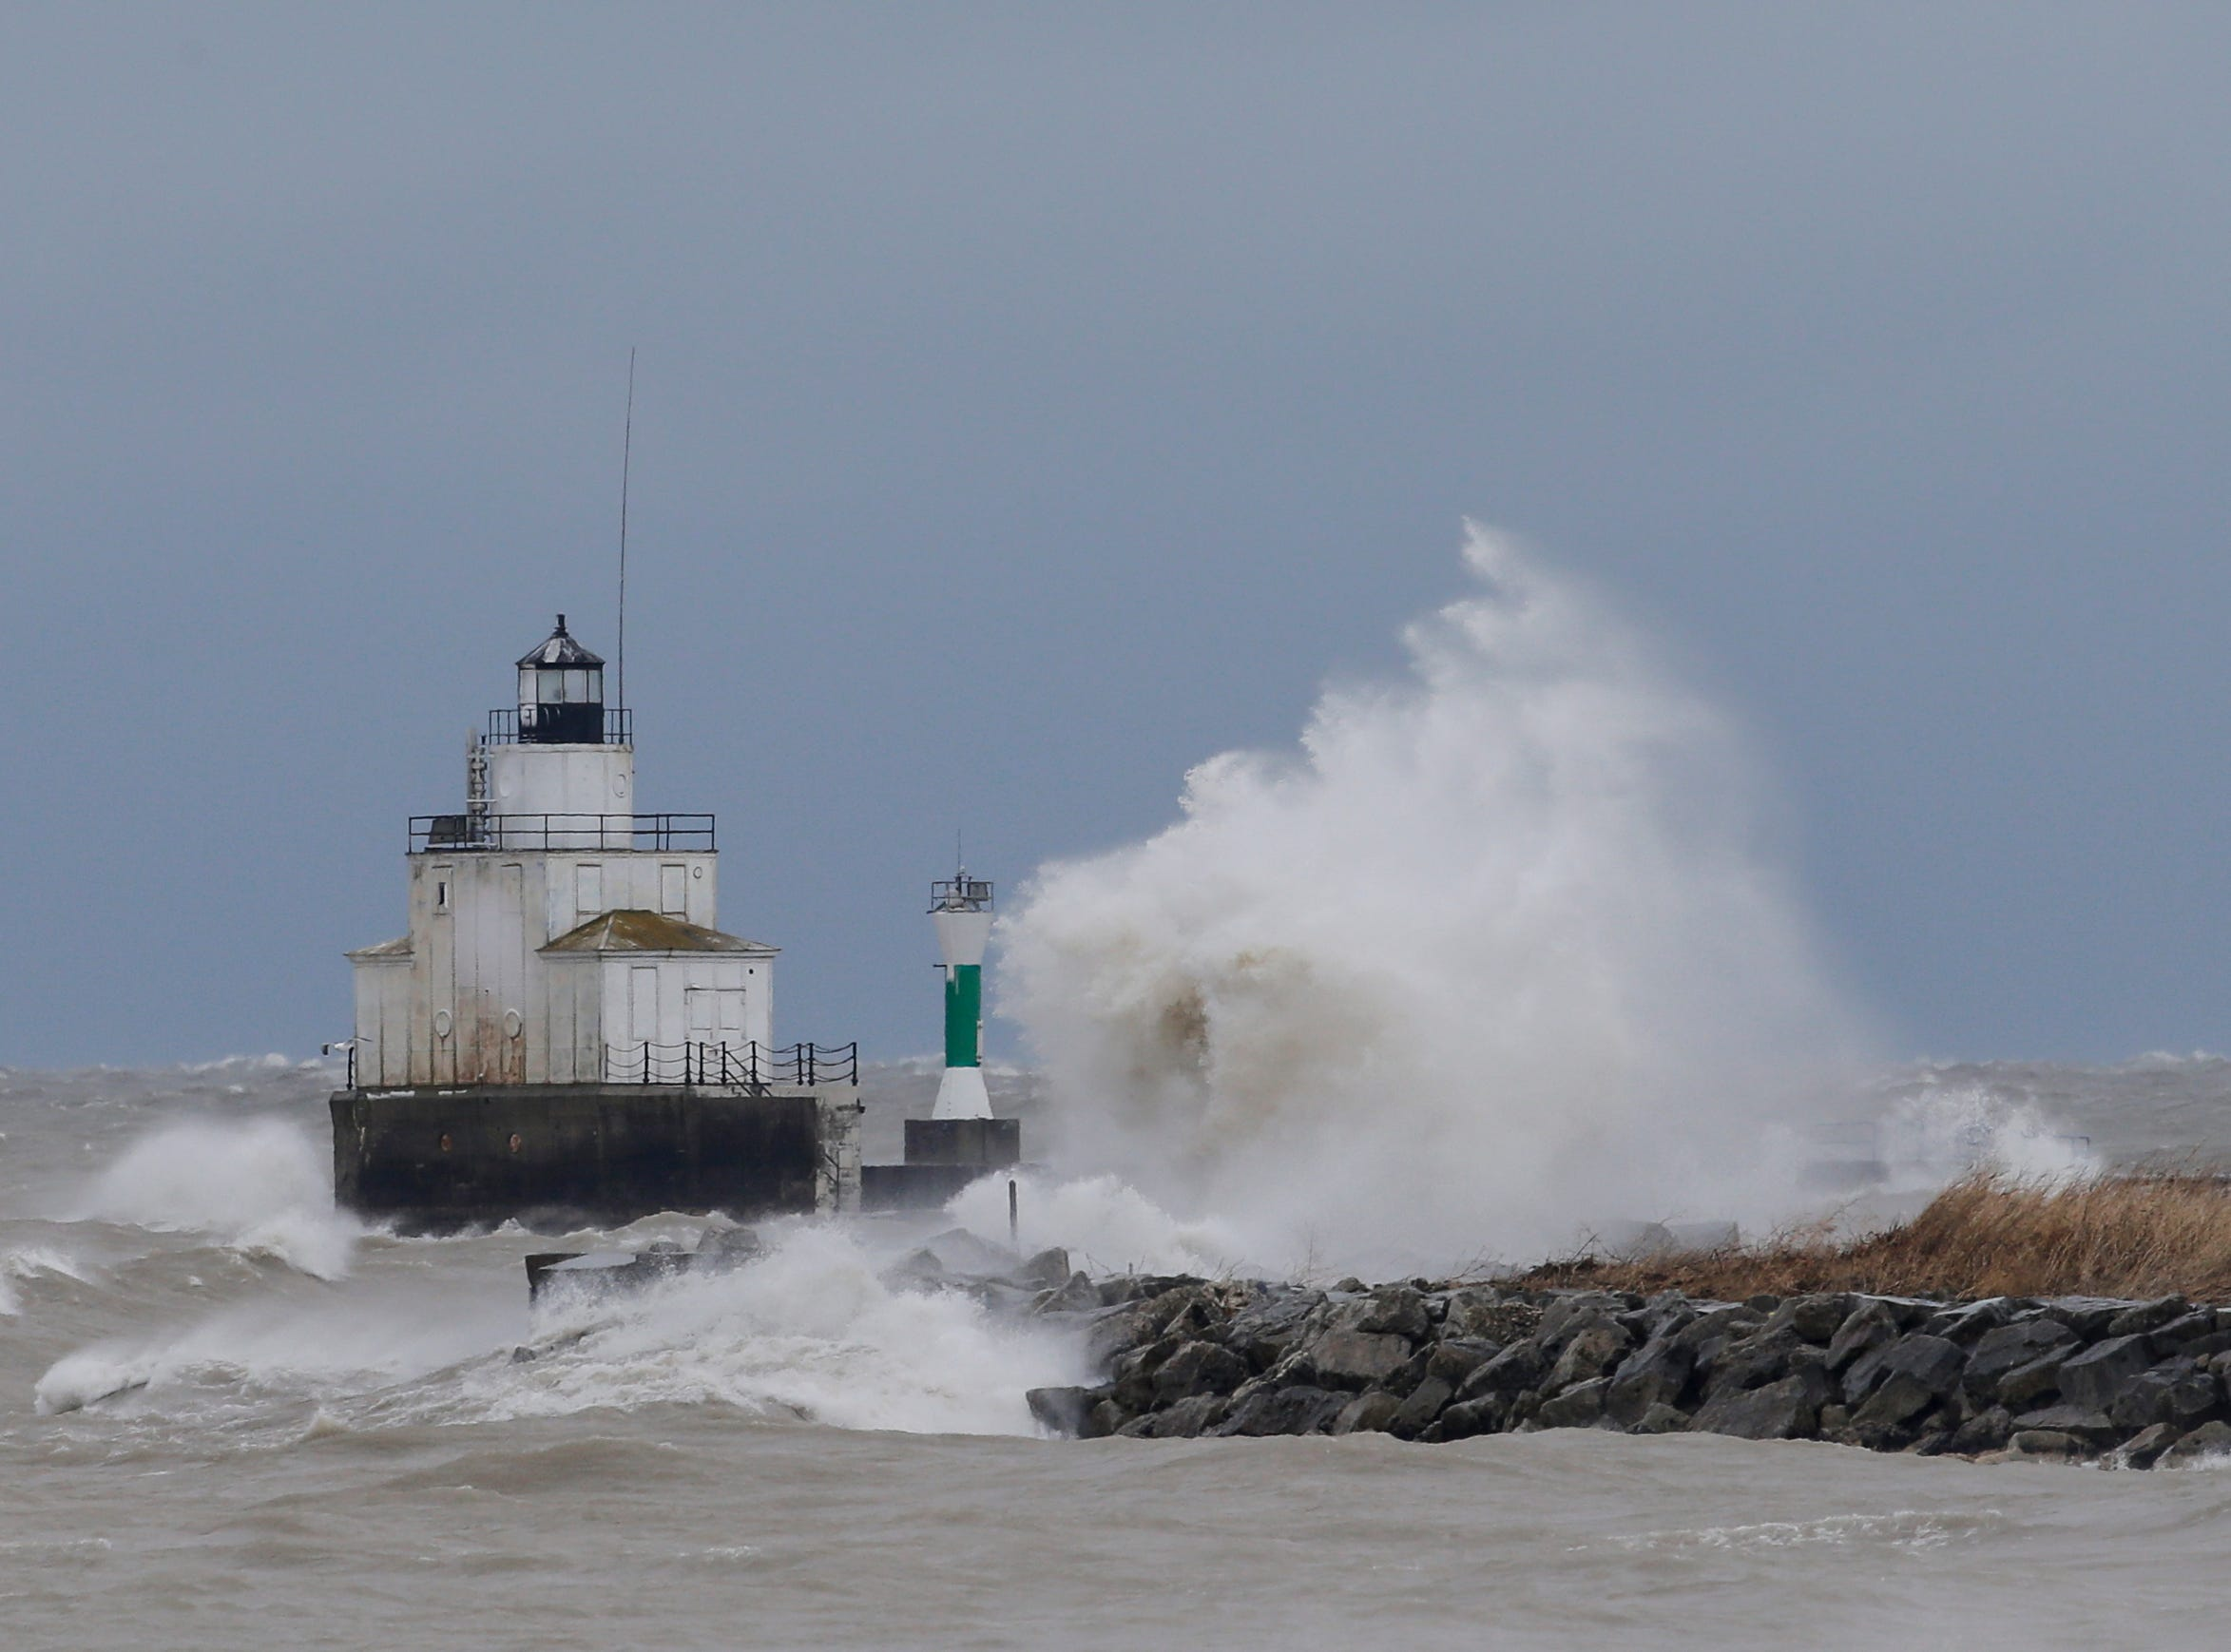 Waves crash against a breakwall along the Lake Michigan shoreline during a winter storm Saturday, Apr. 14, 2018, in Manitowoc, Wis. Josh Clark/USA TODAY NETWORK-Wisconsin